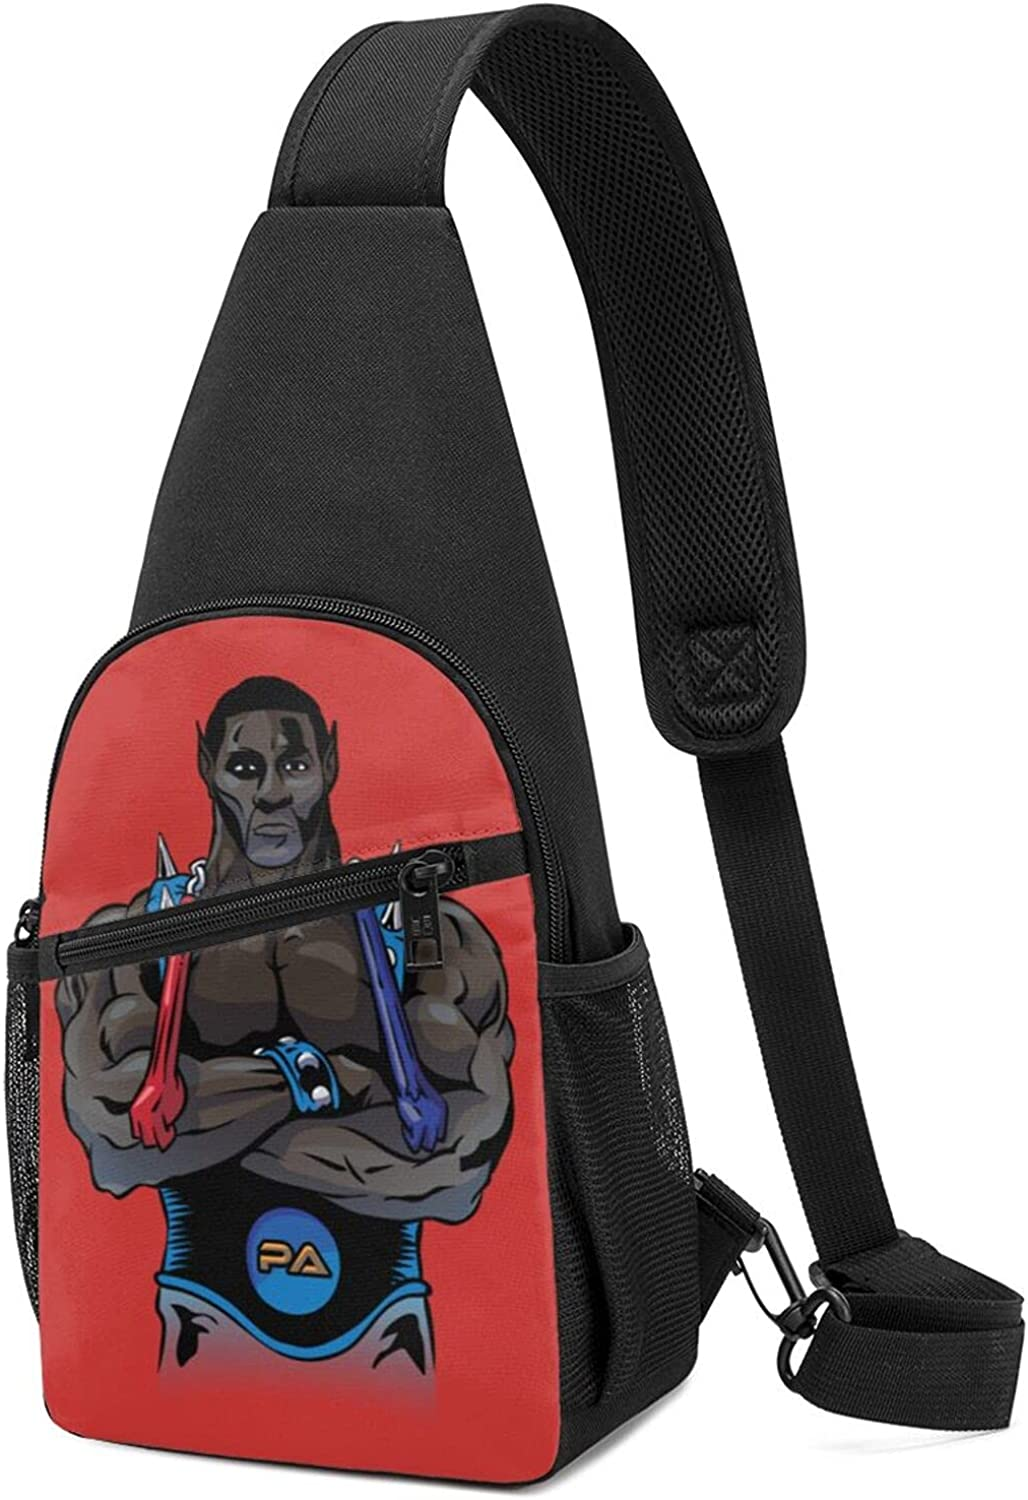 Chest Bag Check New product!! Yo 25% OFF Self Thundercats Shoulder - Backpac Sling